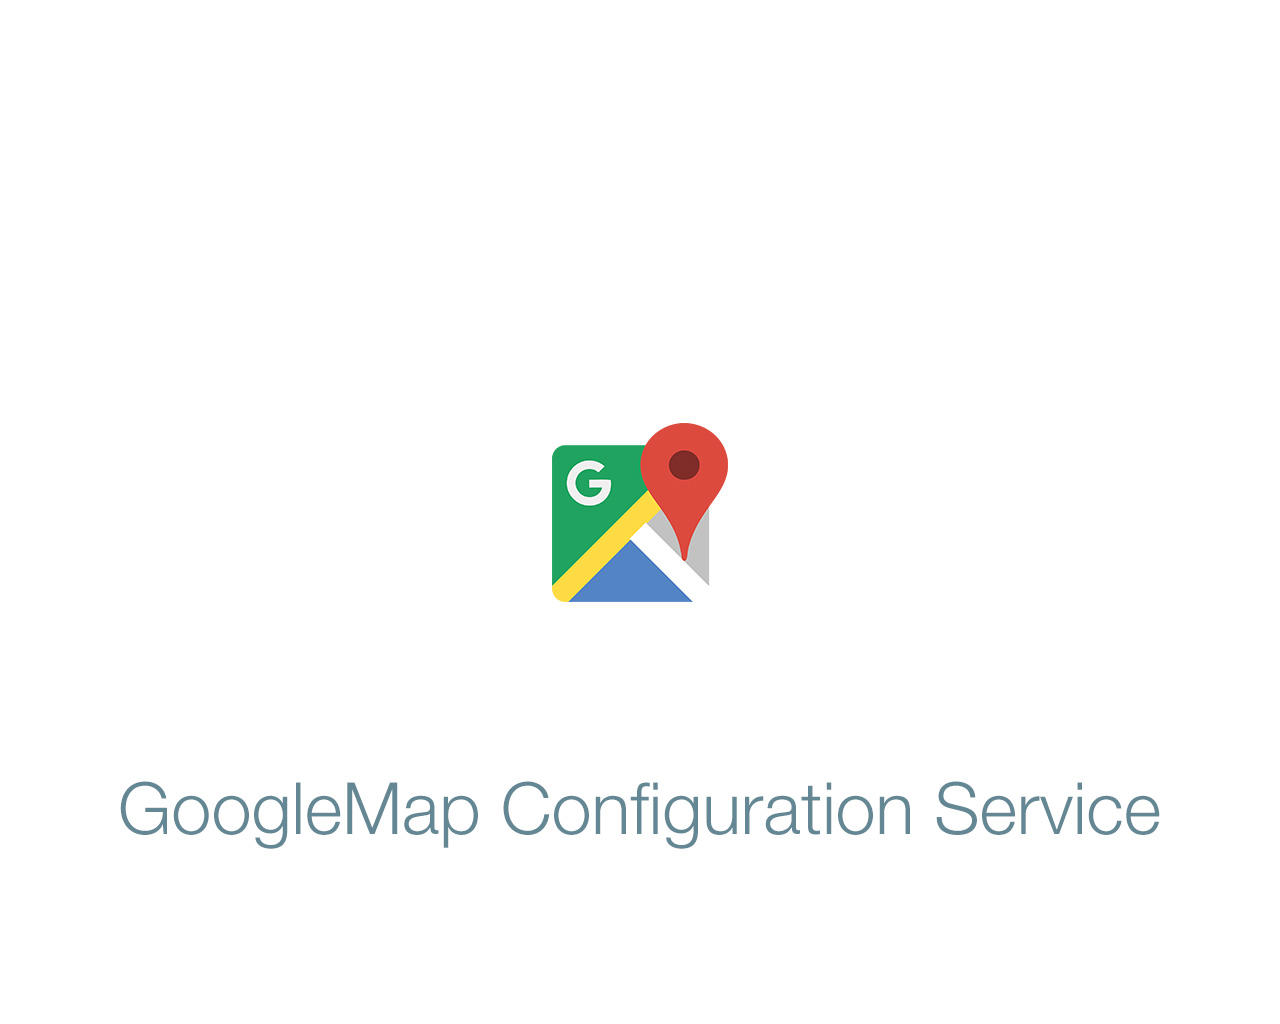 GoogleMap Configuration and Setup by ki-themes - 101907